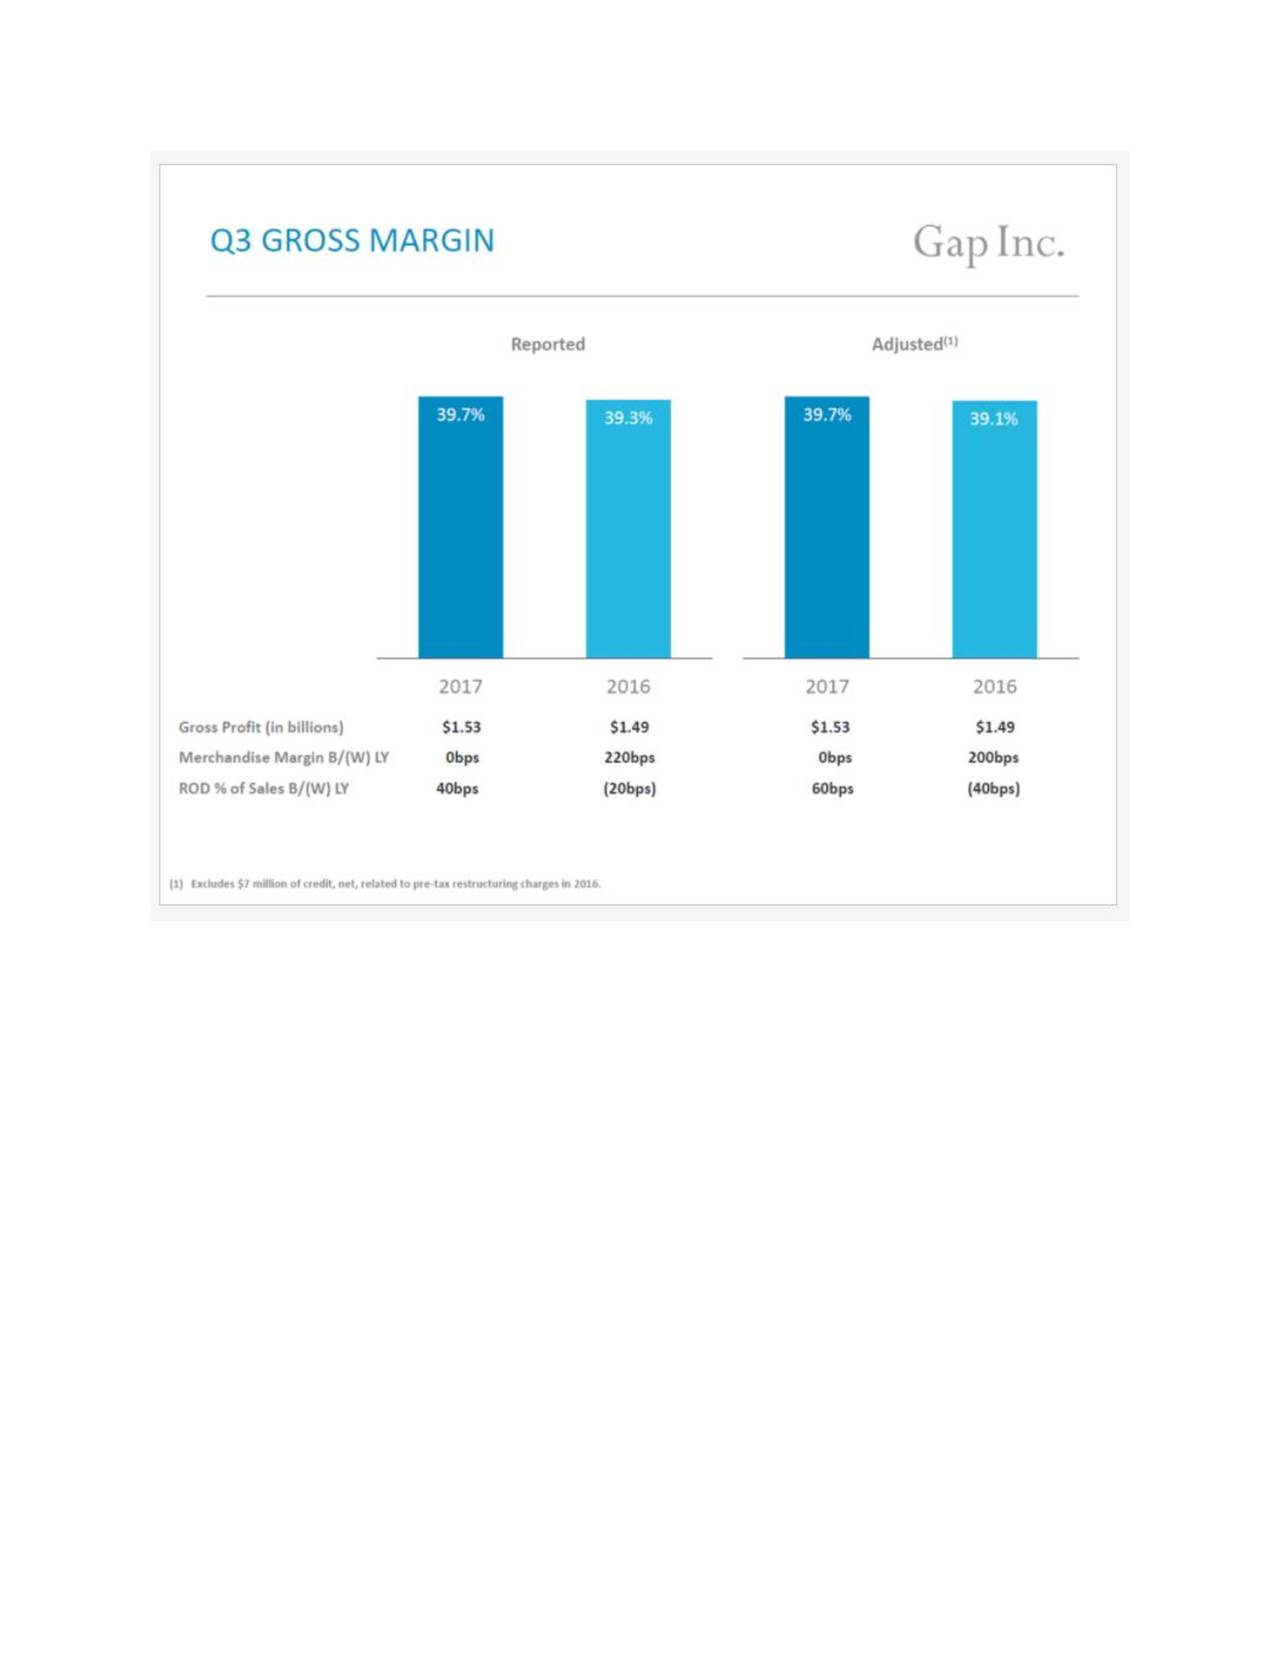 gap inc interim report 10 company strategy gap inc owns and operates five brands and over 3,200 stores in more than 40 countries worldwide of the four porter's generic competitive strategies, gap inc falls under the differentiation category because the san francisco based company sells 5 different brands stretching itself to reach every market in the fashion.